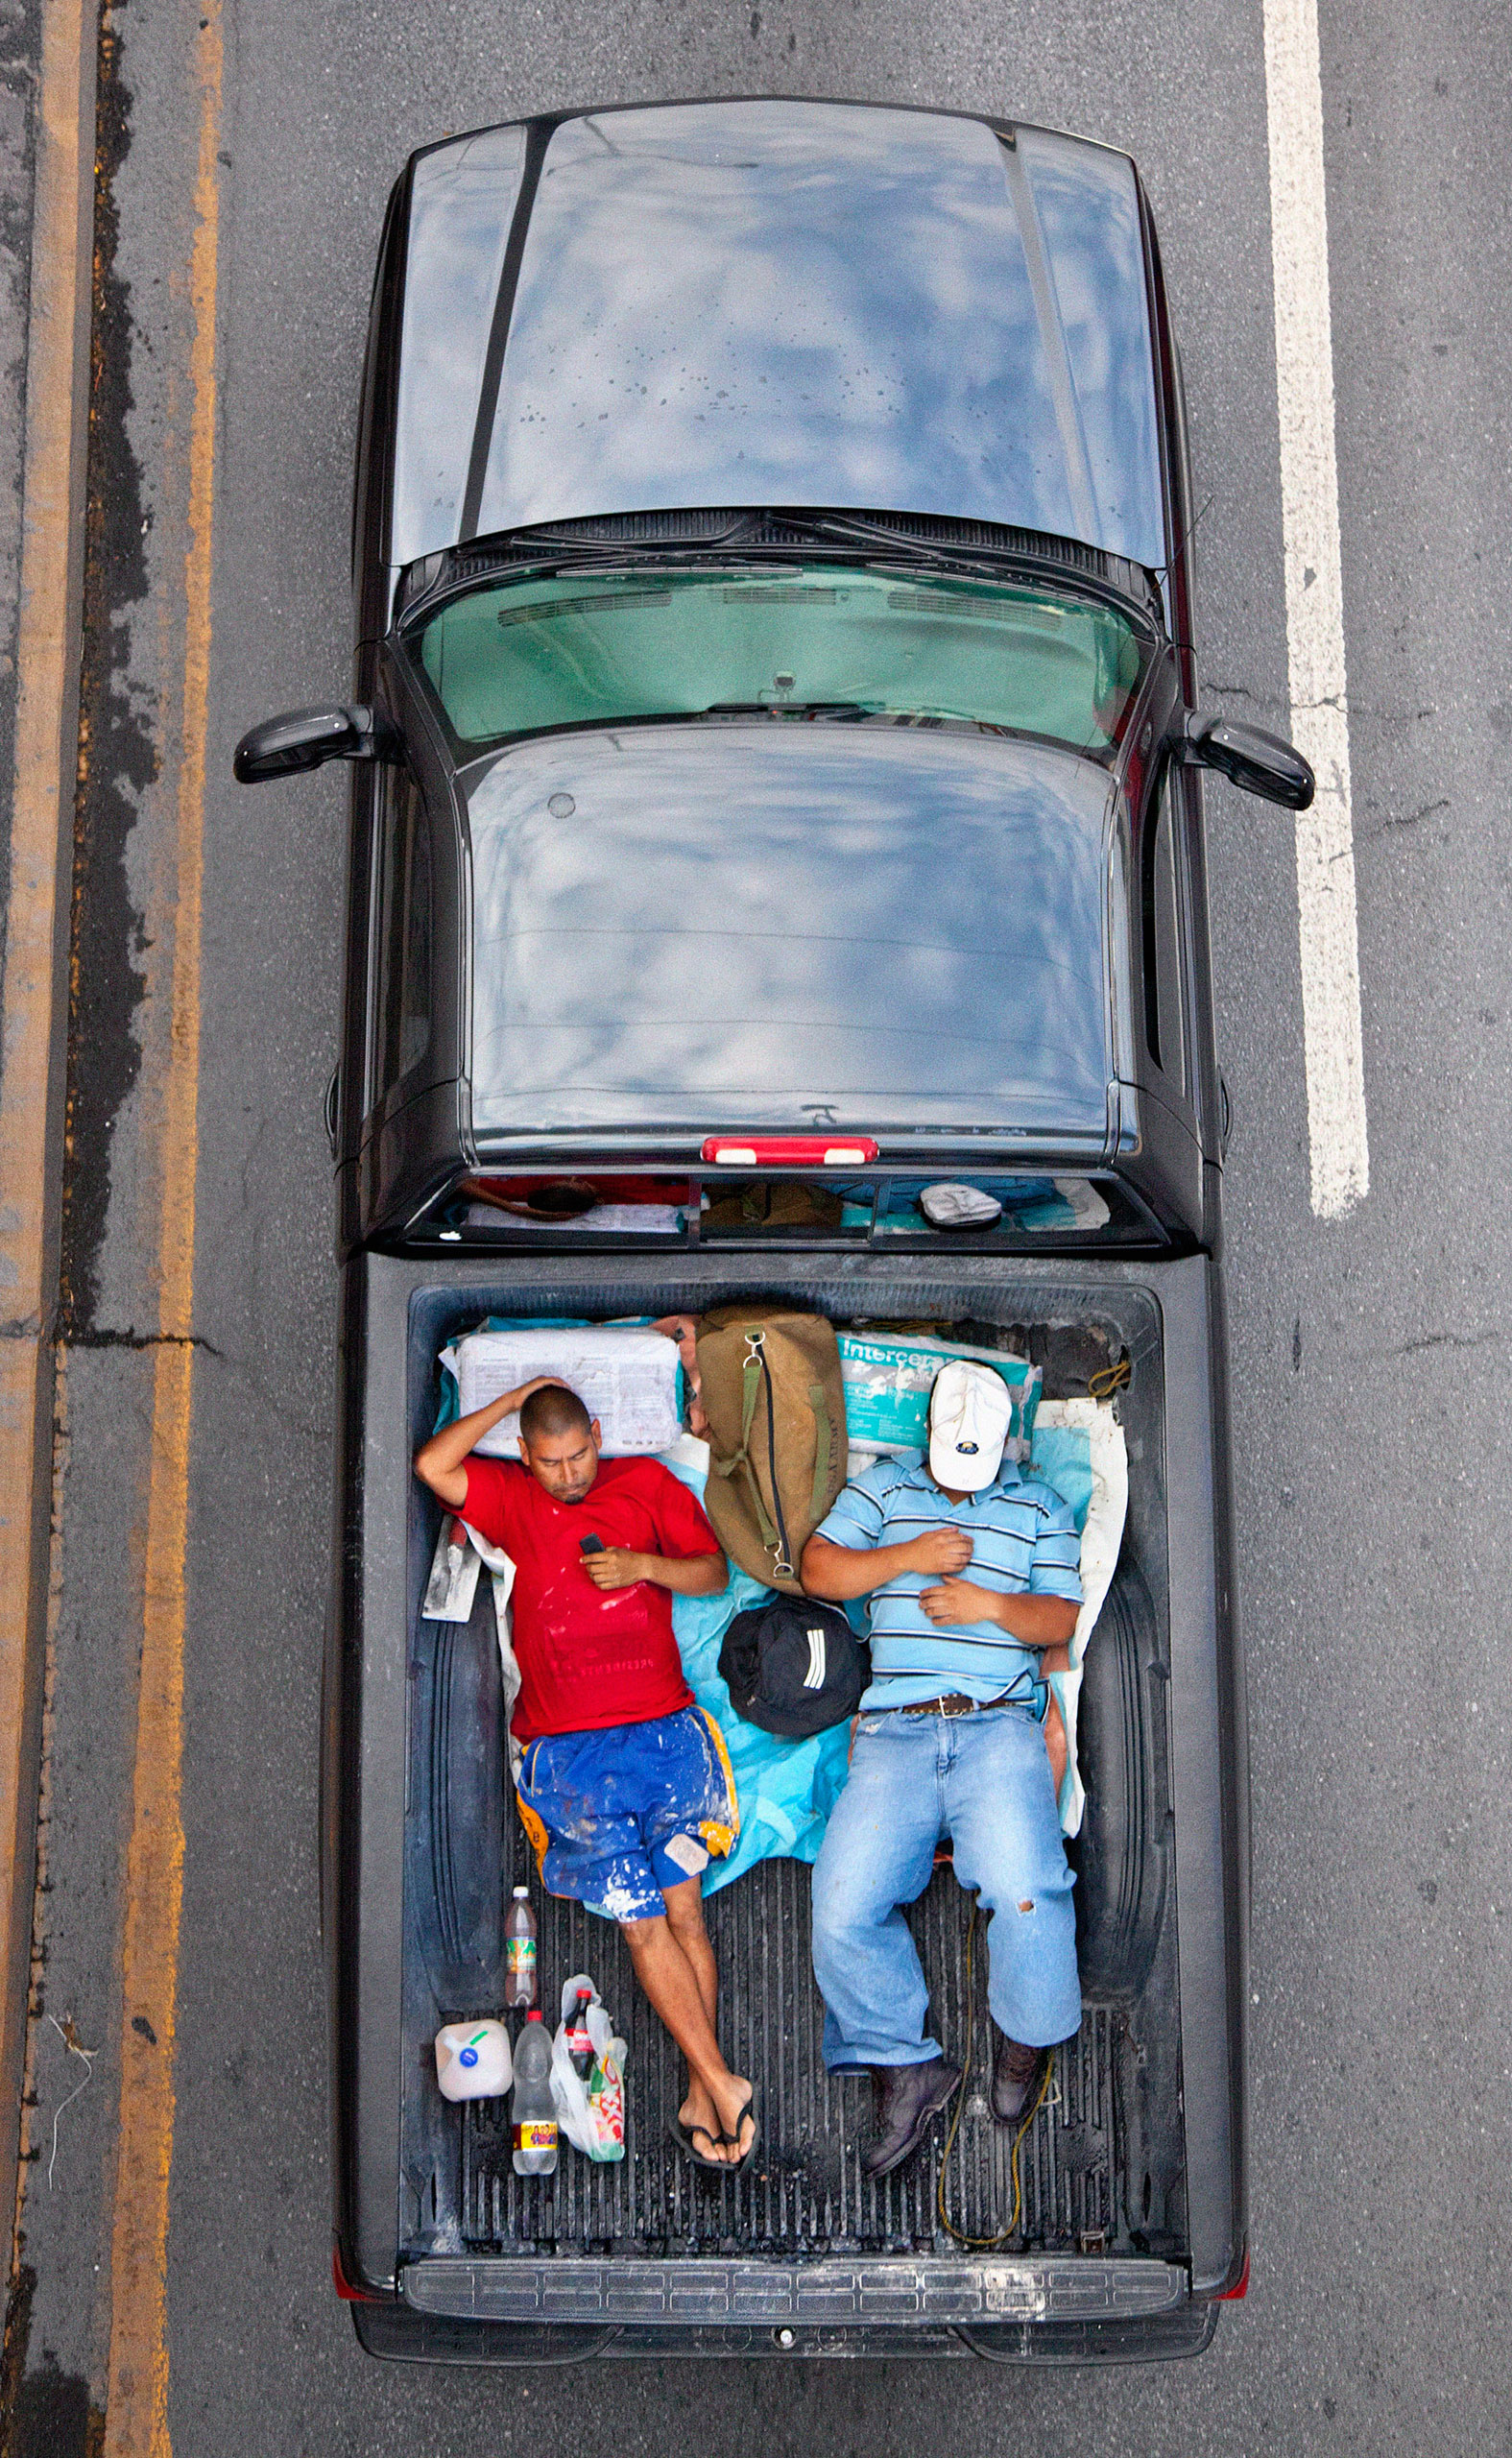 From the series Carpoolers